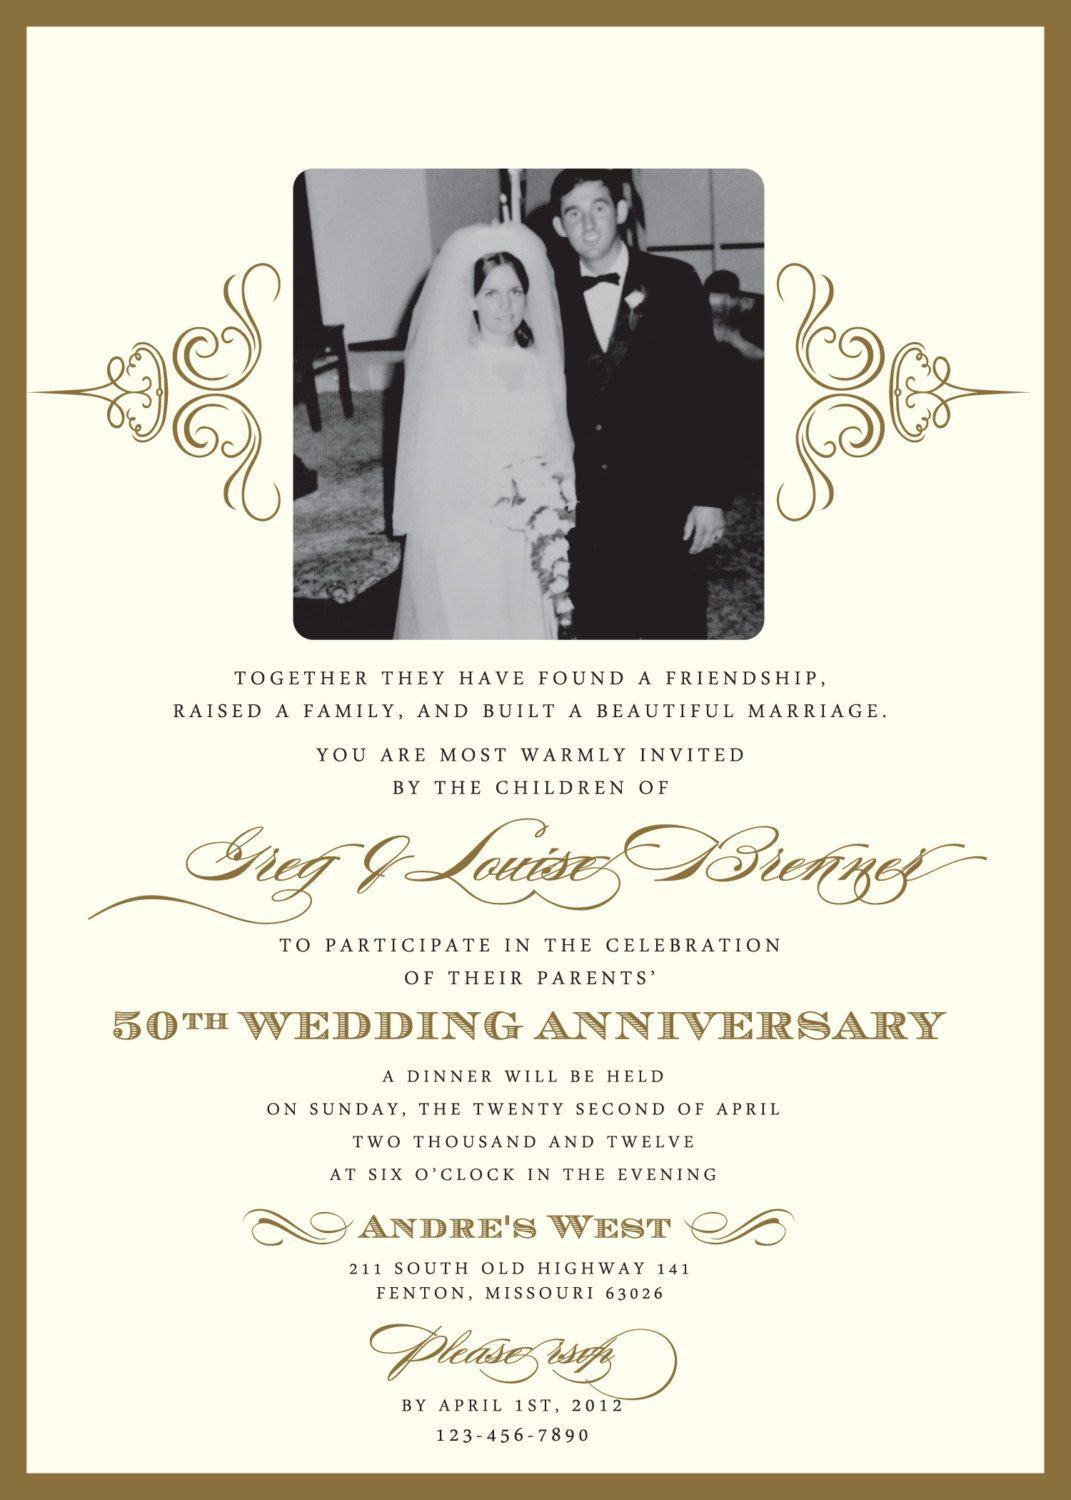 005 Magnificent 50th Wedding Anniversary Invitation Sample Picture  Samples Free Party Template Card IdeaFull